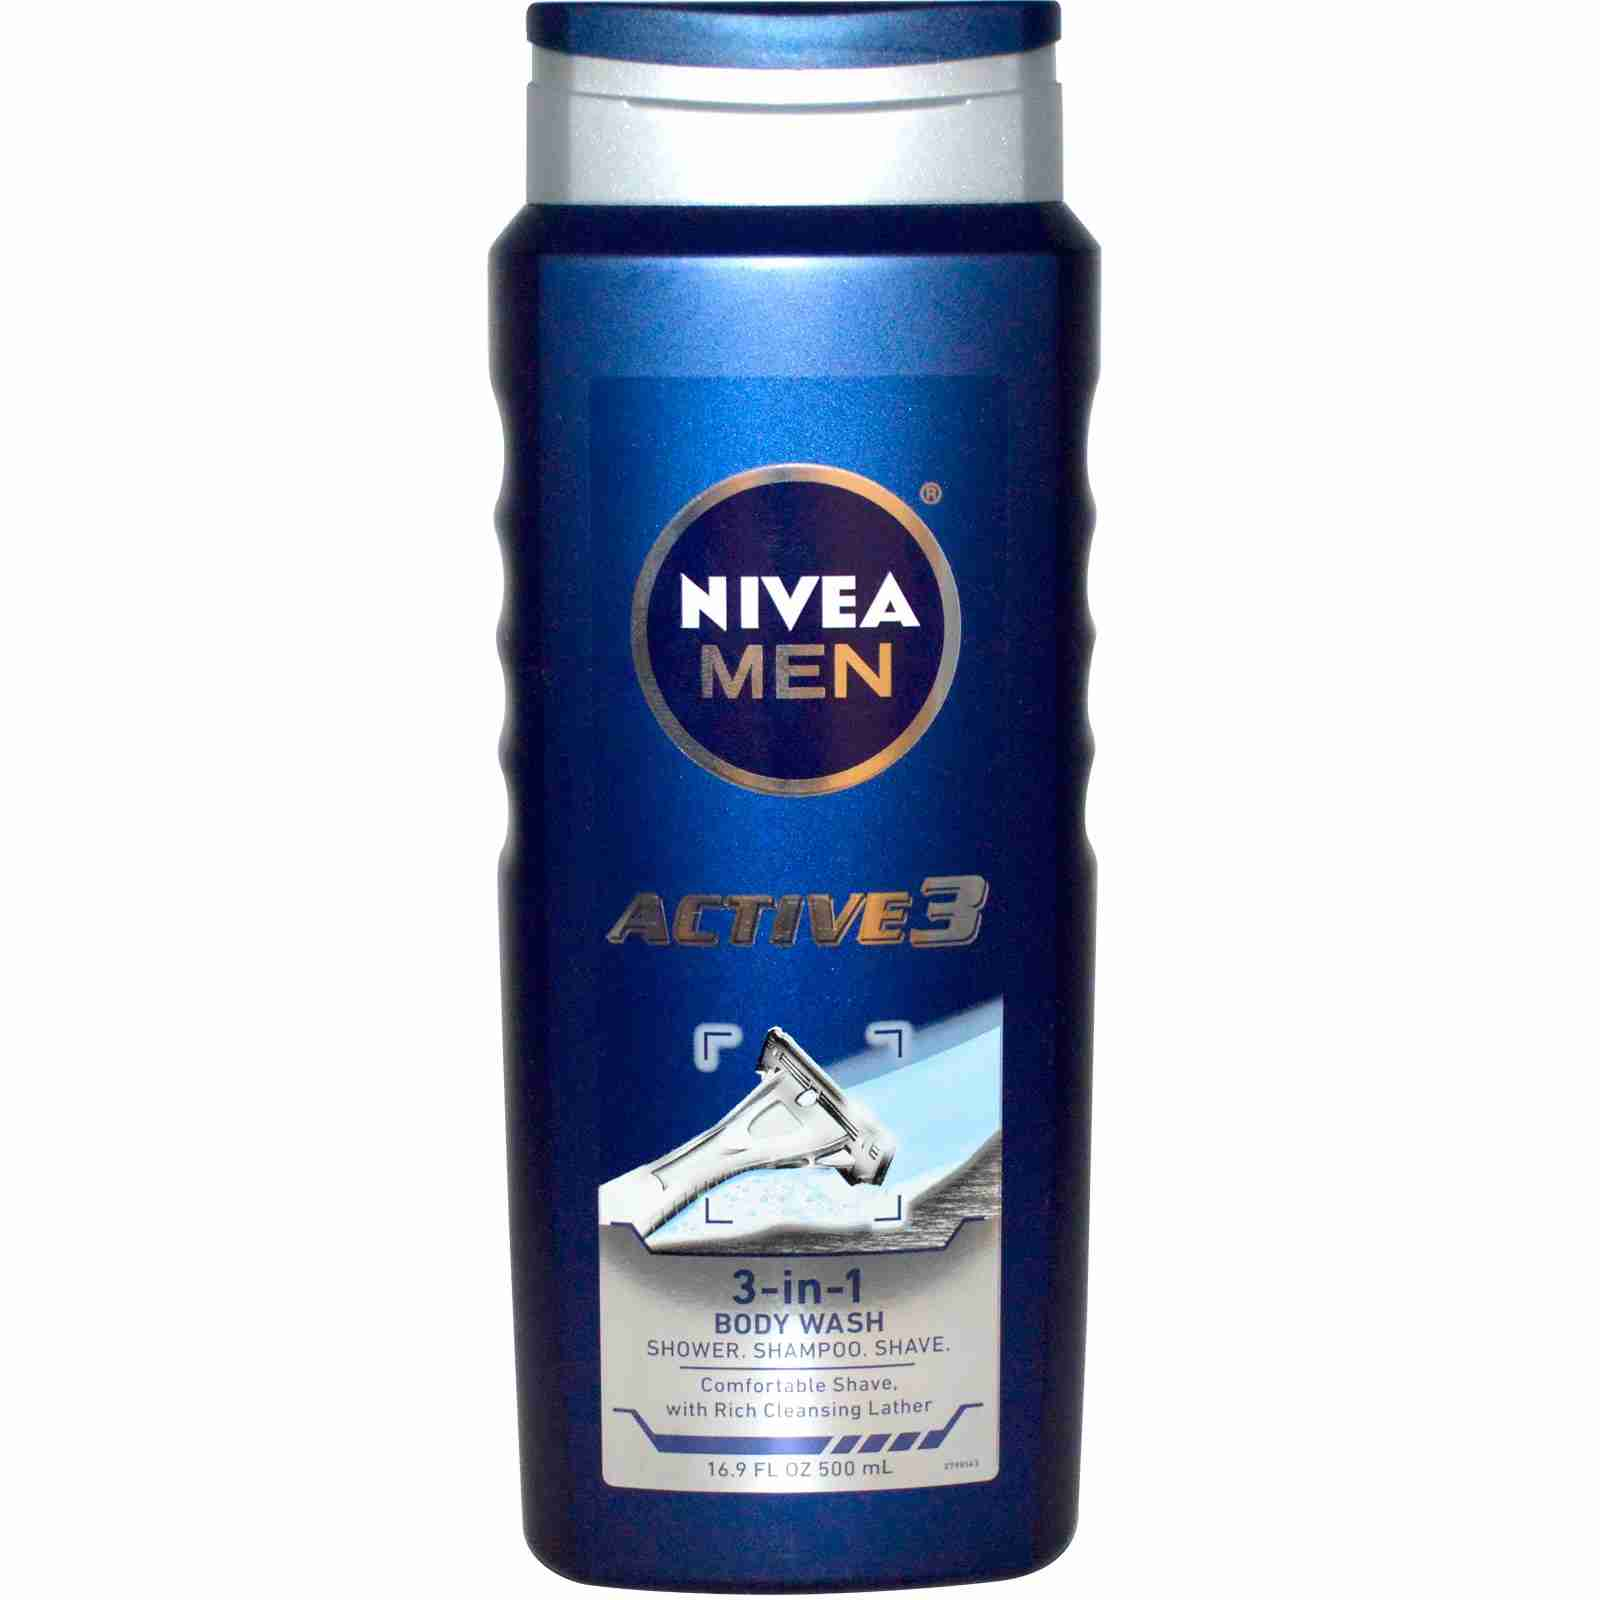 Nivea For Men Body Wash, Active 3